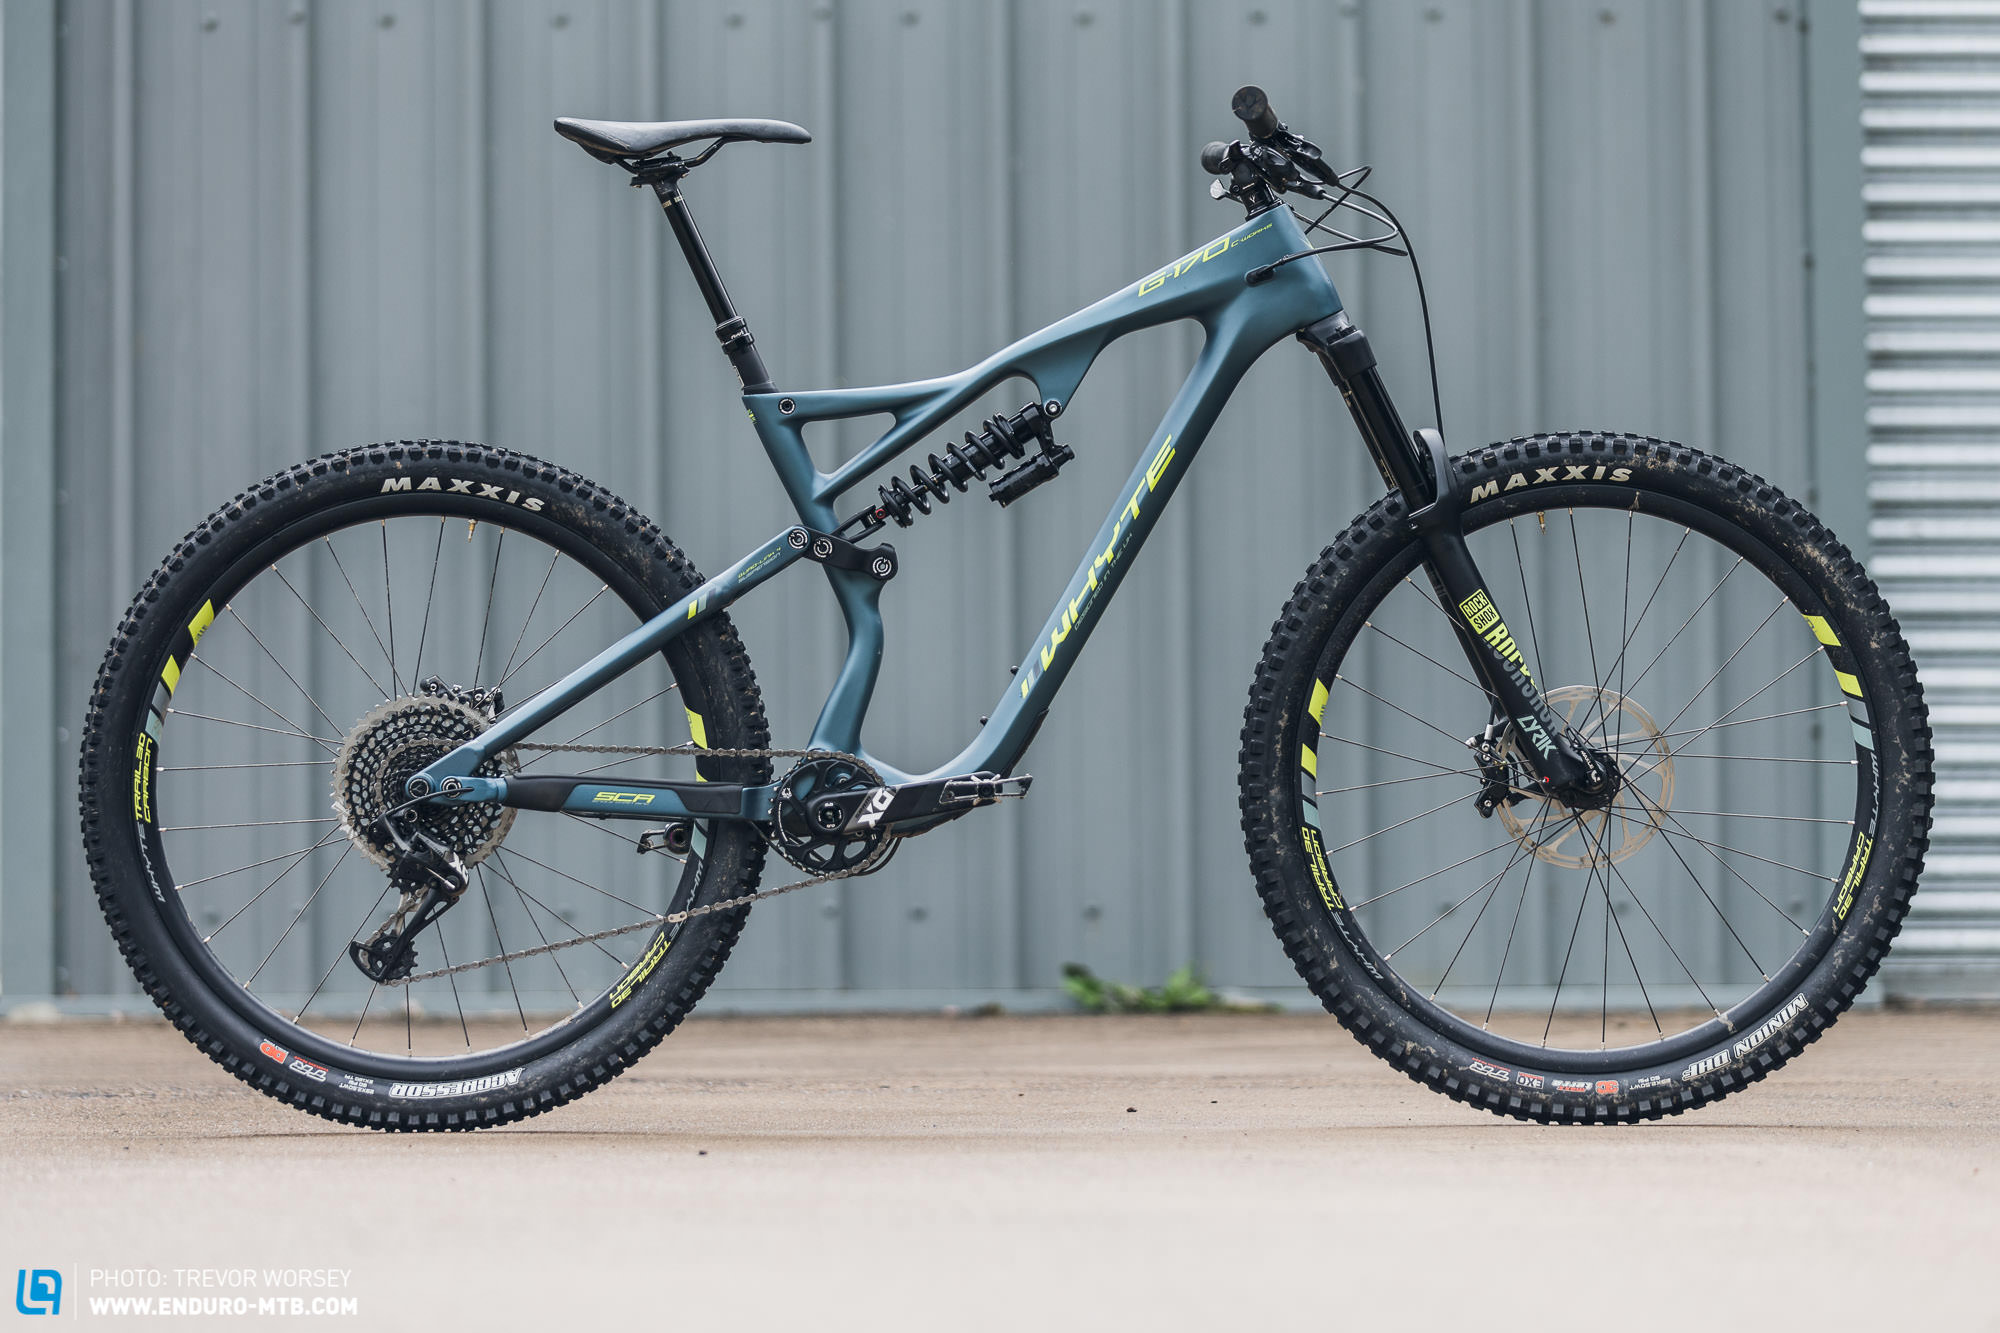 Supercharged: Whyte G-170 Works 29er Review | ENDURO Mountainbike